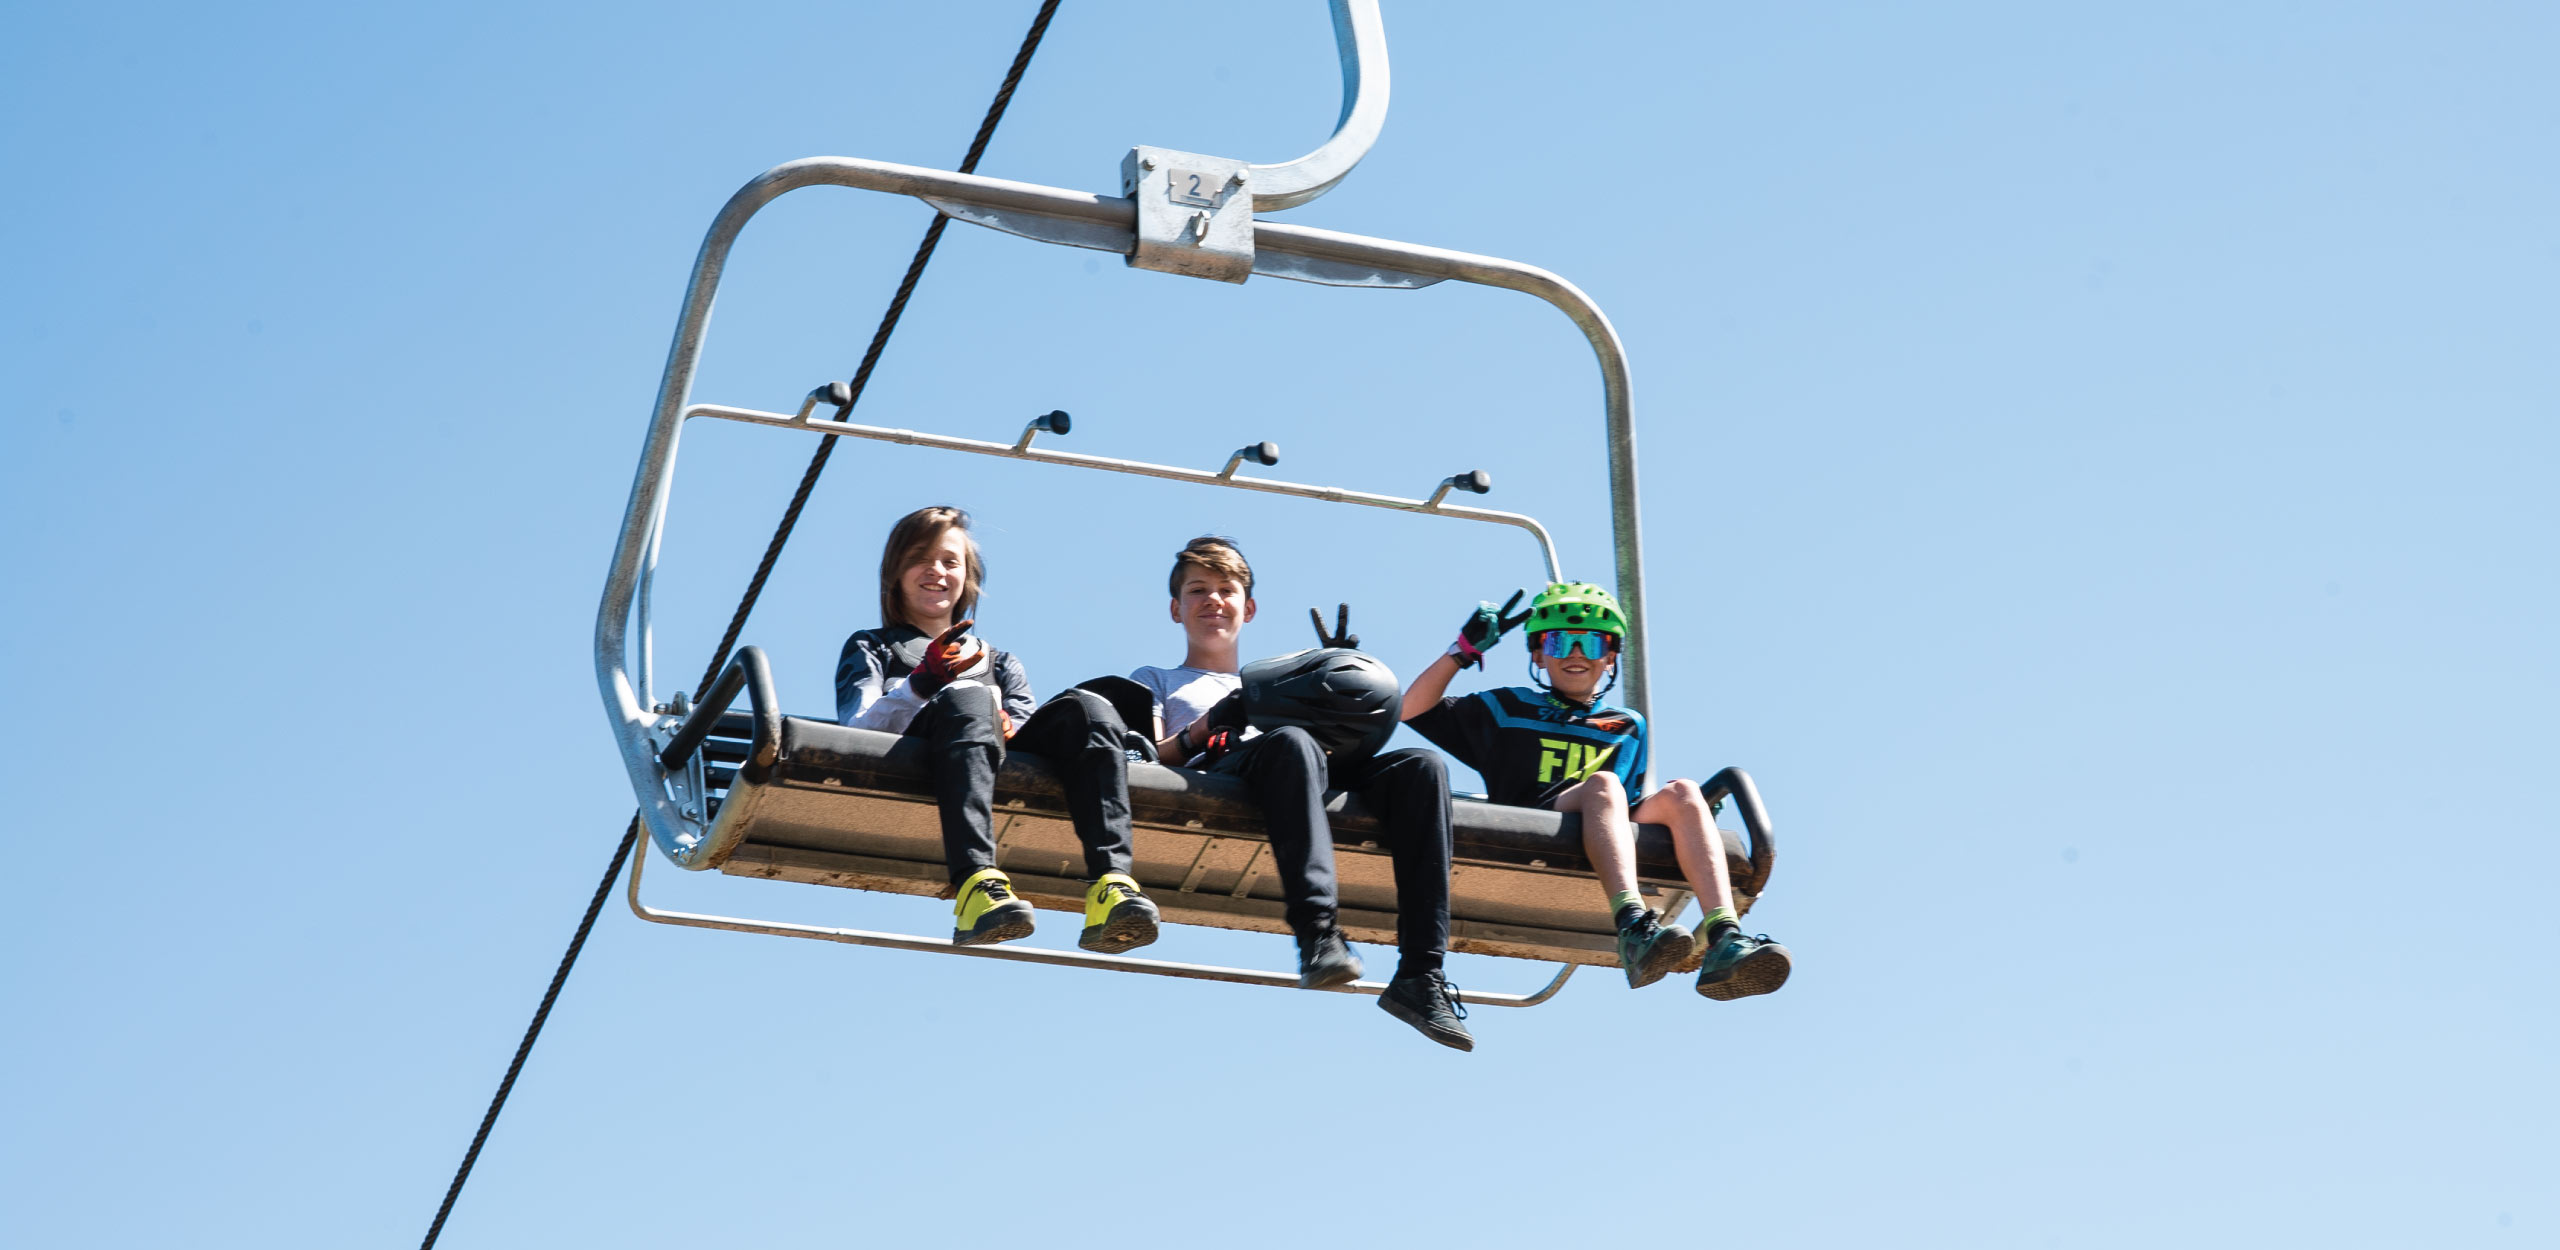 Riding the Hot Laps Quad chairlift.